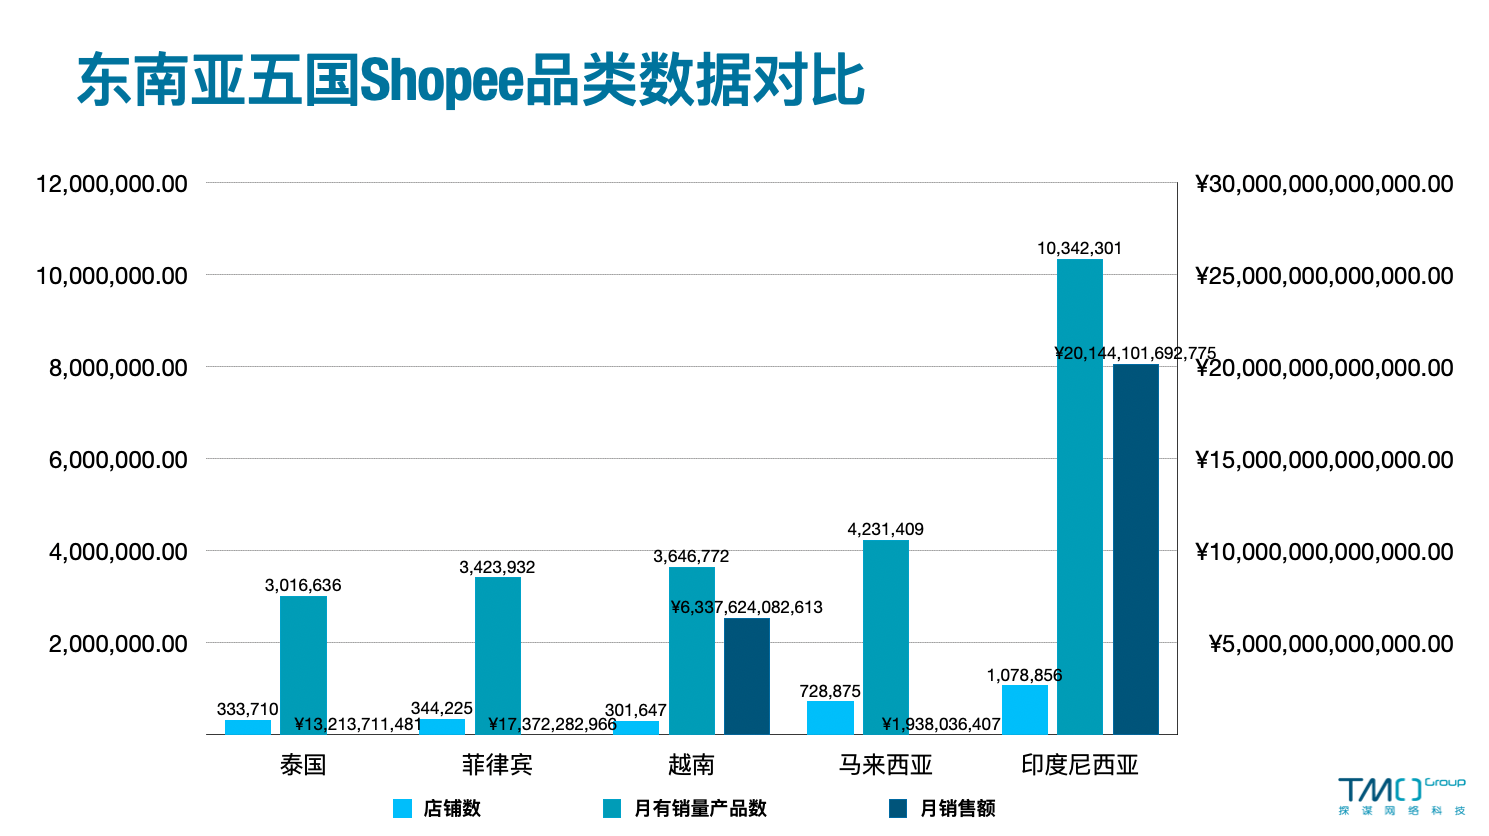 Data Comparison for Shopee genres in the Southeastern Market